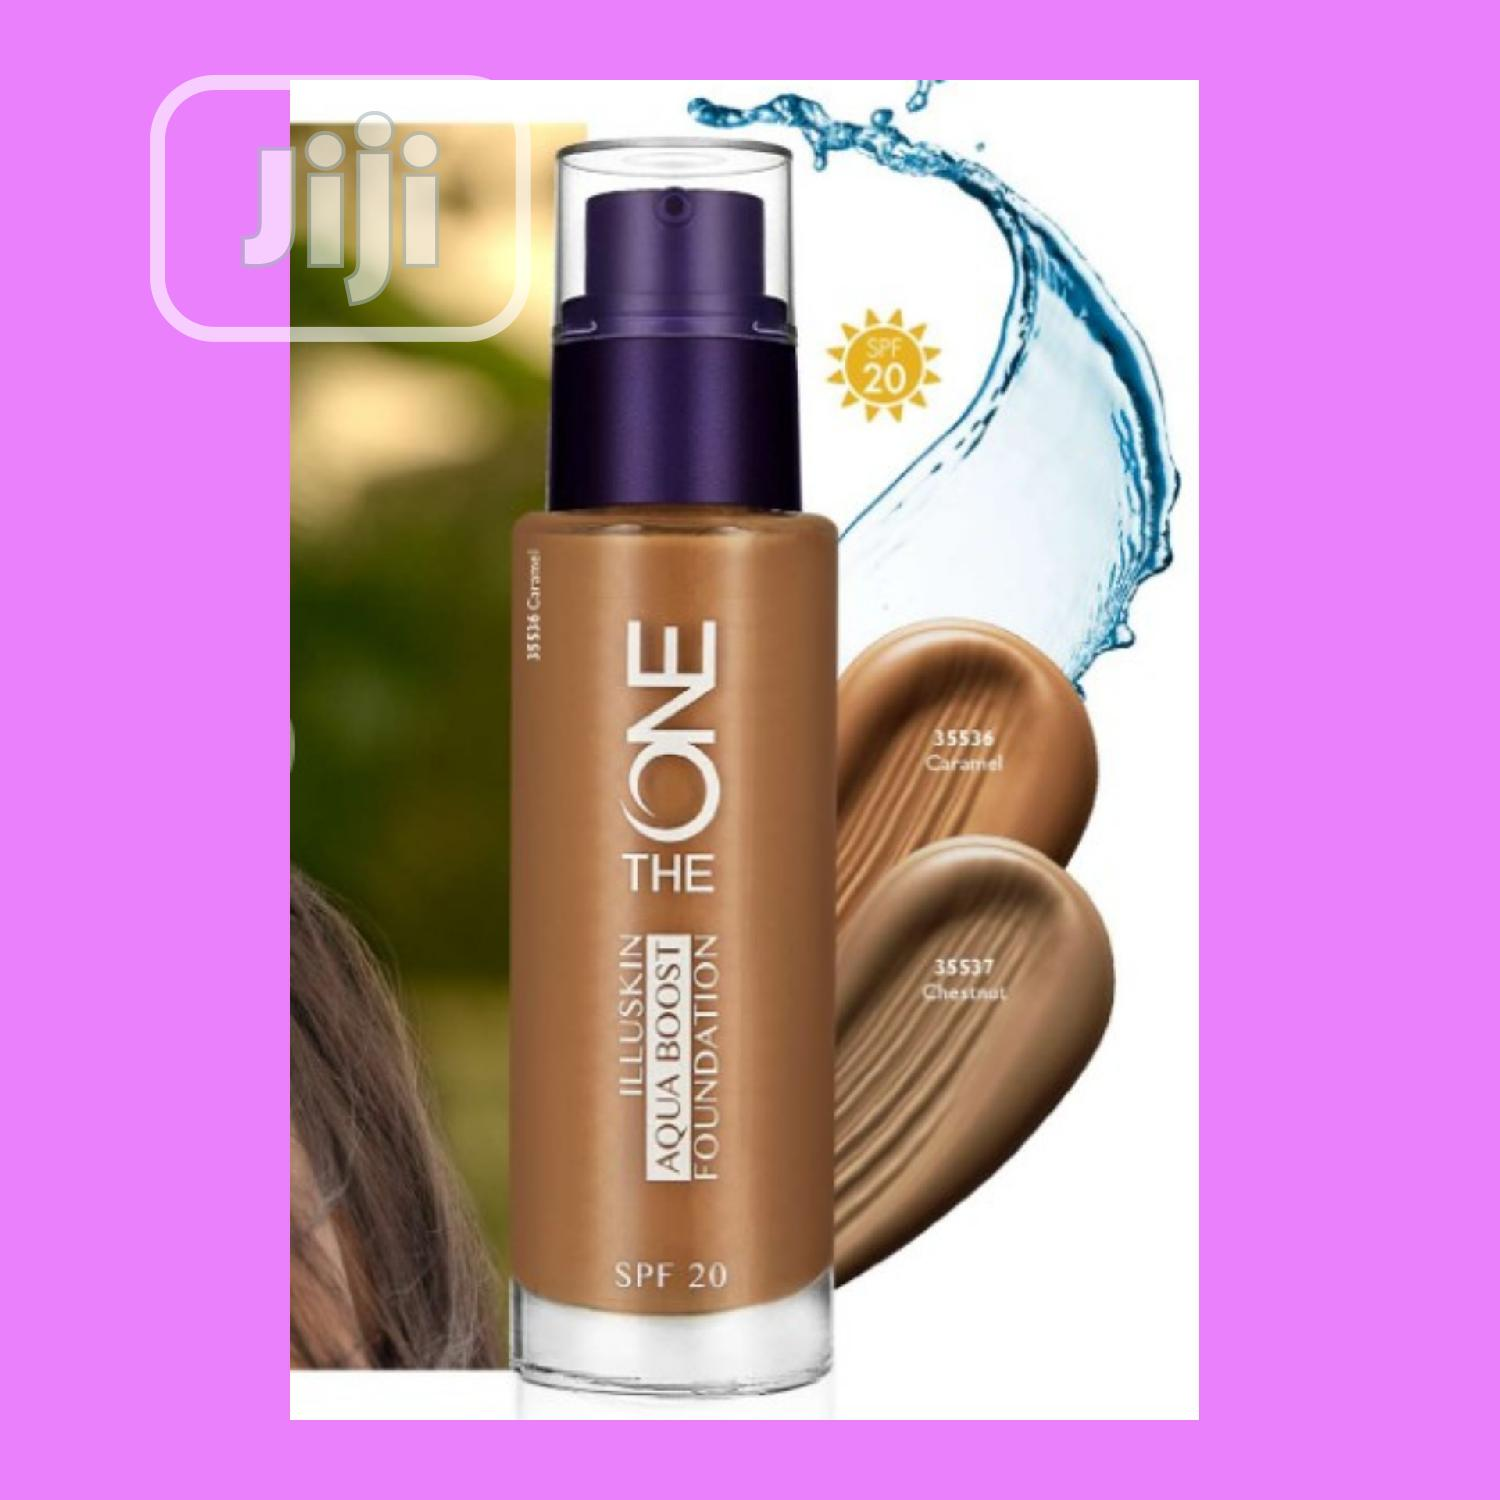 The One Illuskin Aquaboost Foundation